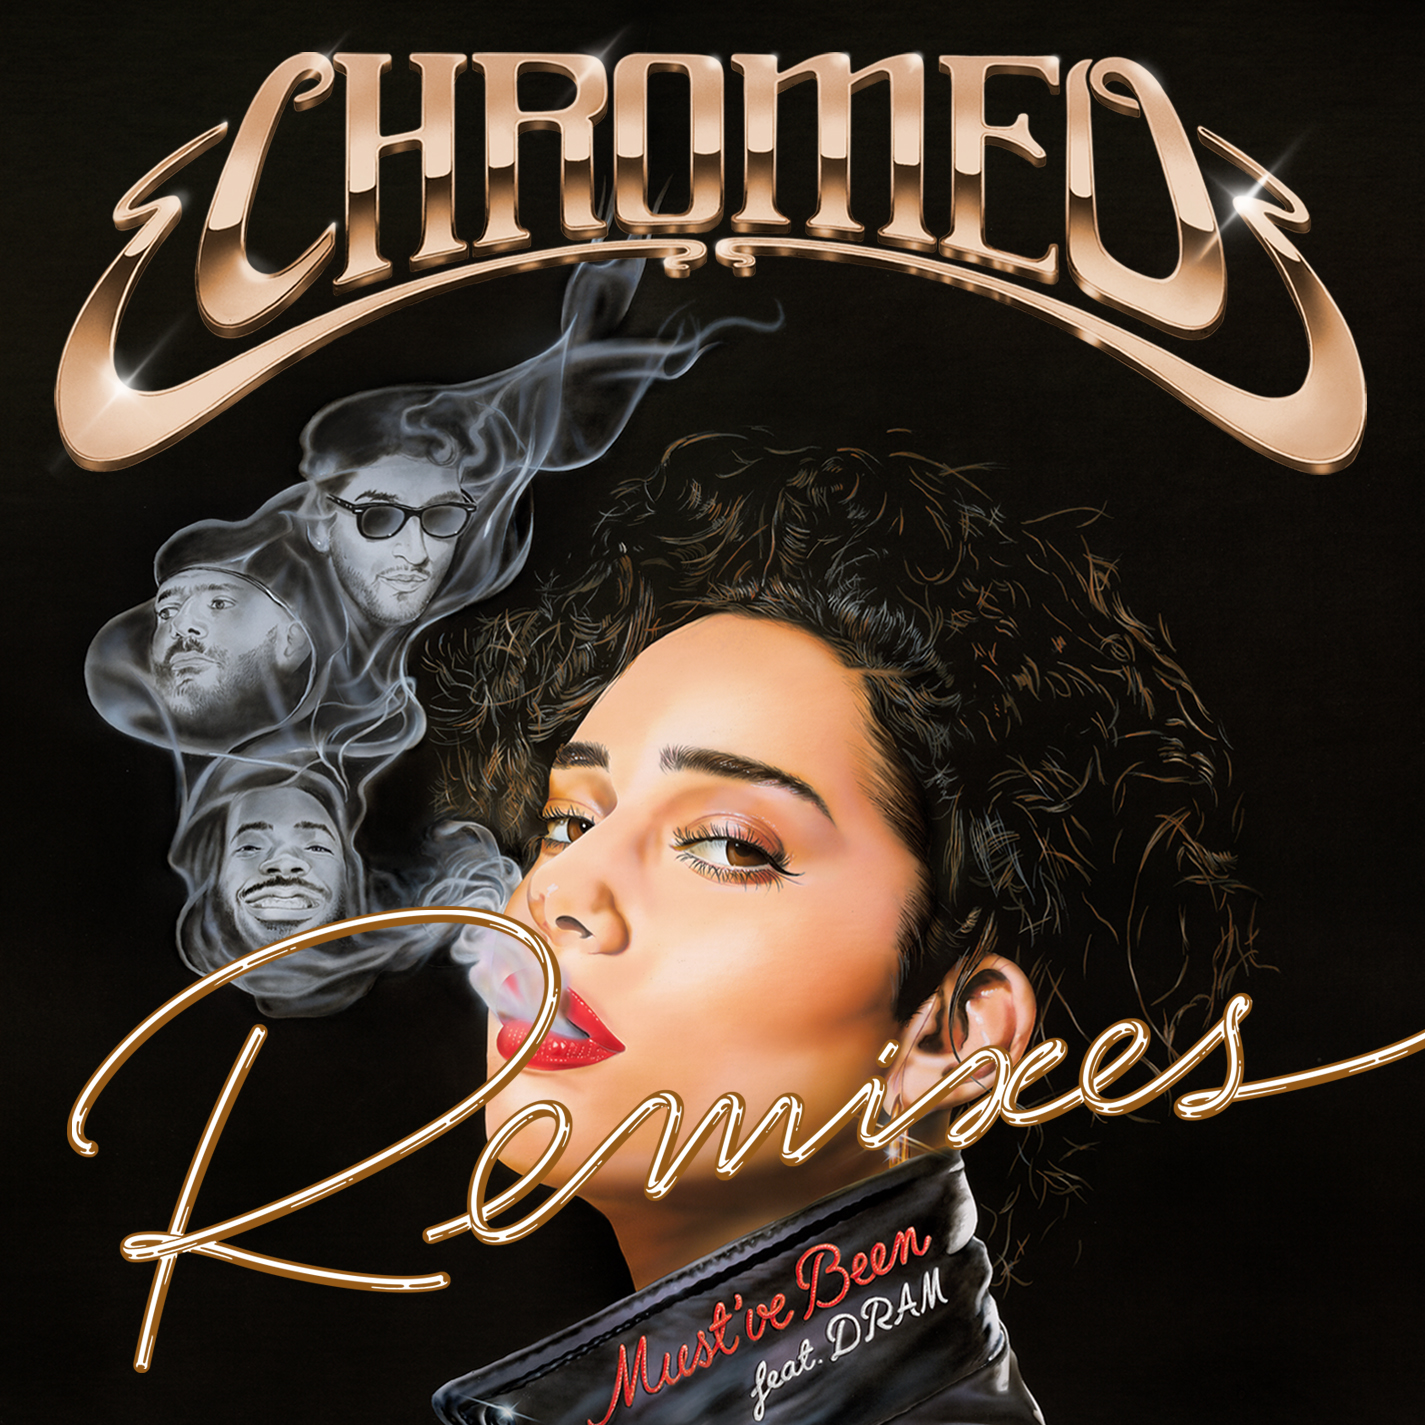 Chromeo – Must've Been (feat. DRAM) [CID Remix]